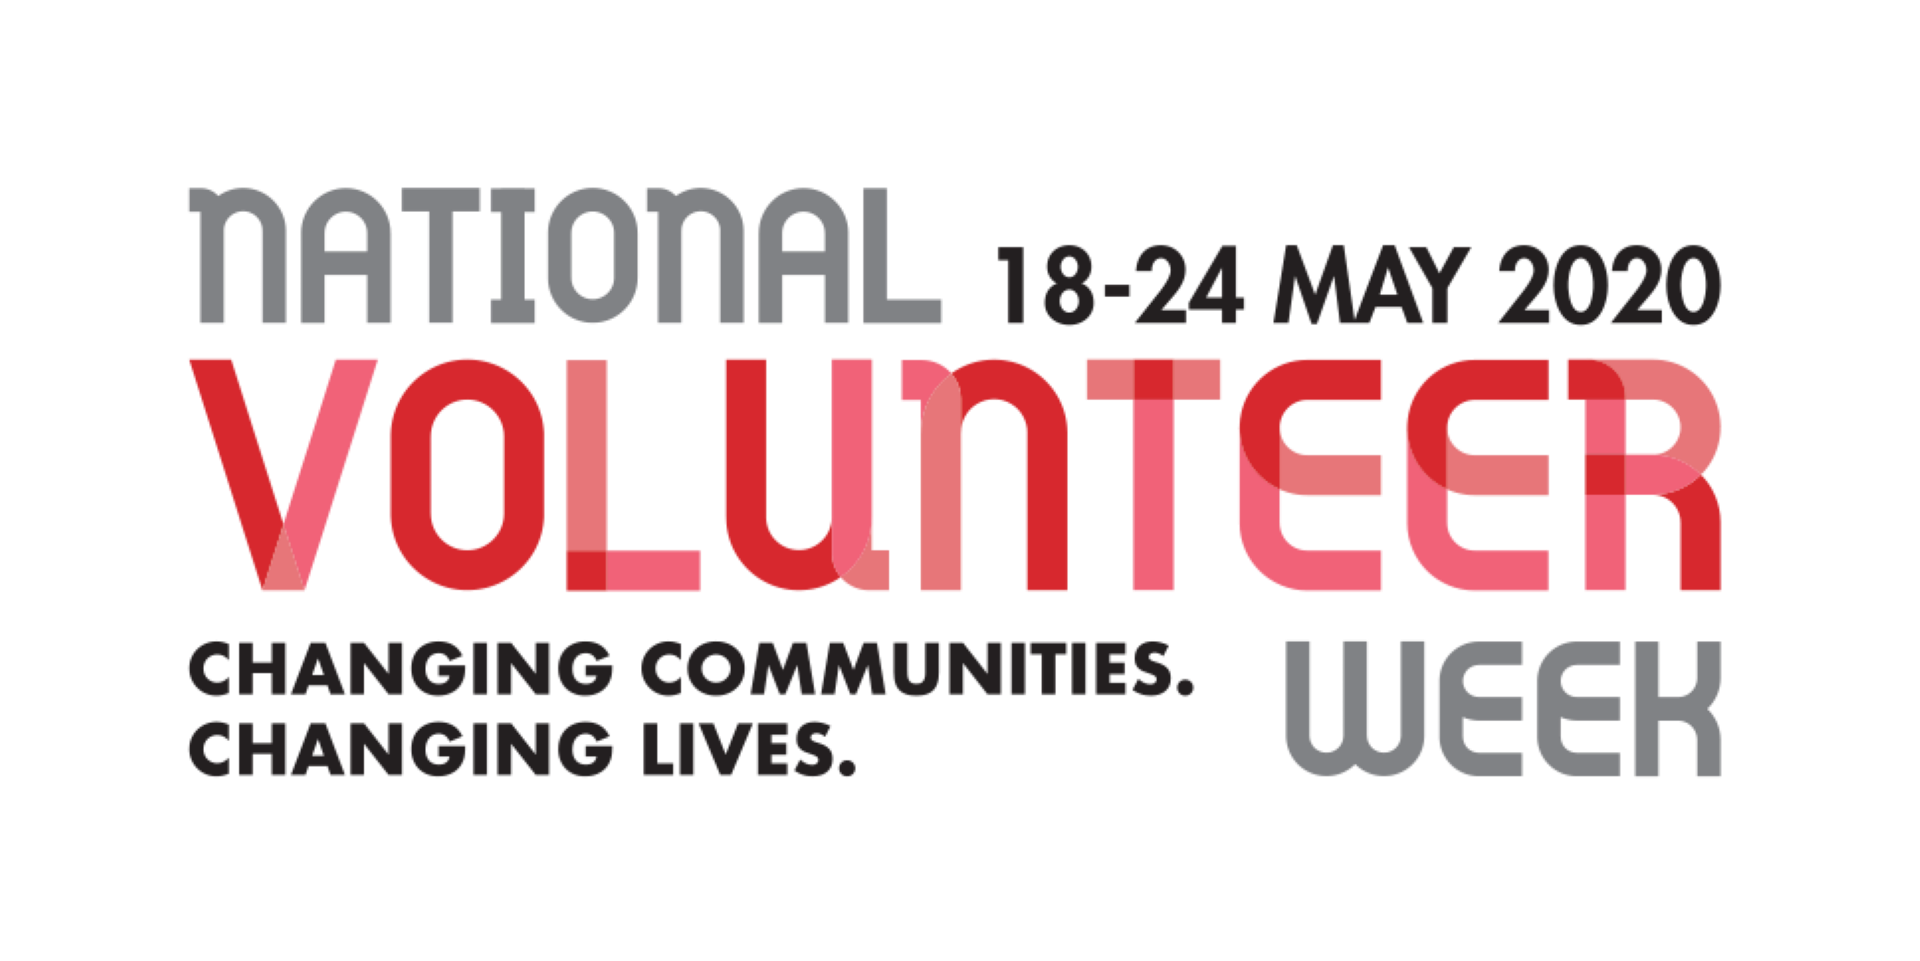 The text reads 'National volunteer week 18-24 May. Changing communities. Changing lives'